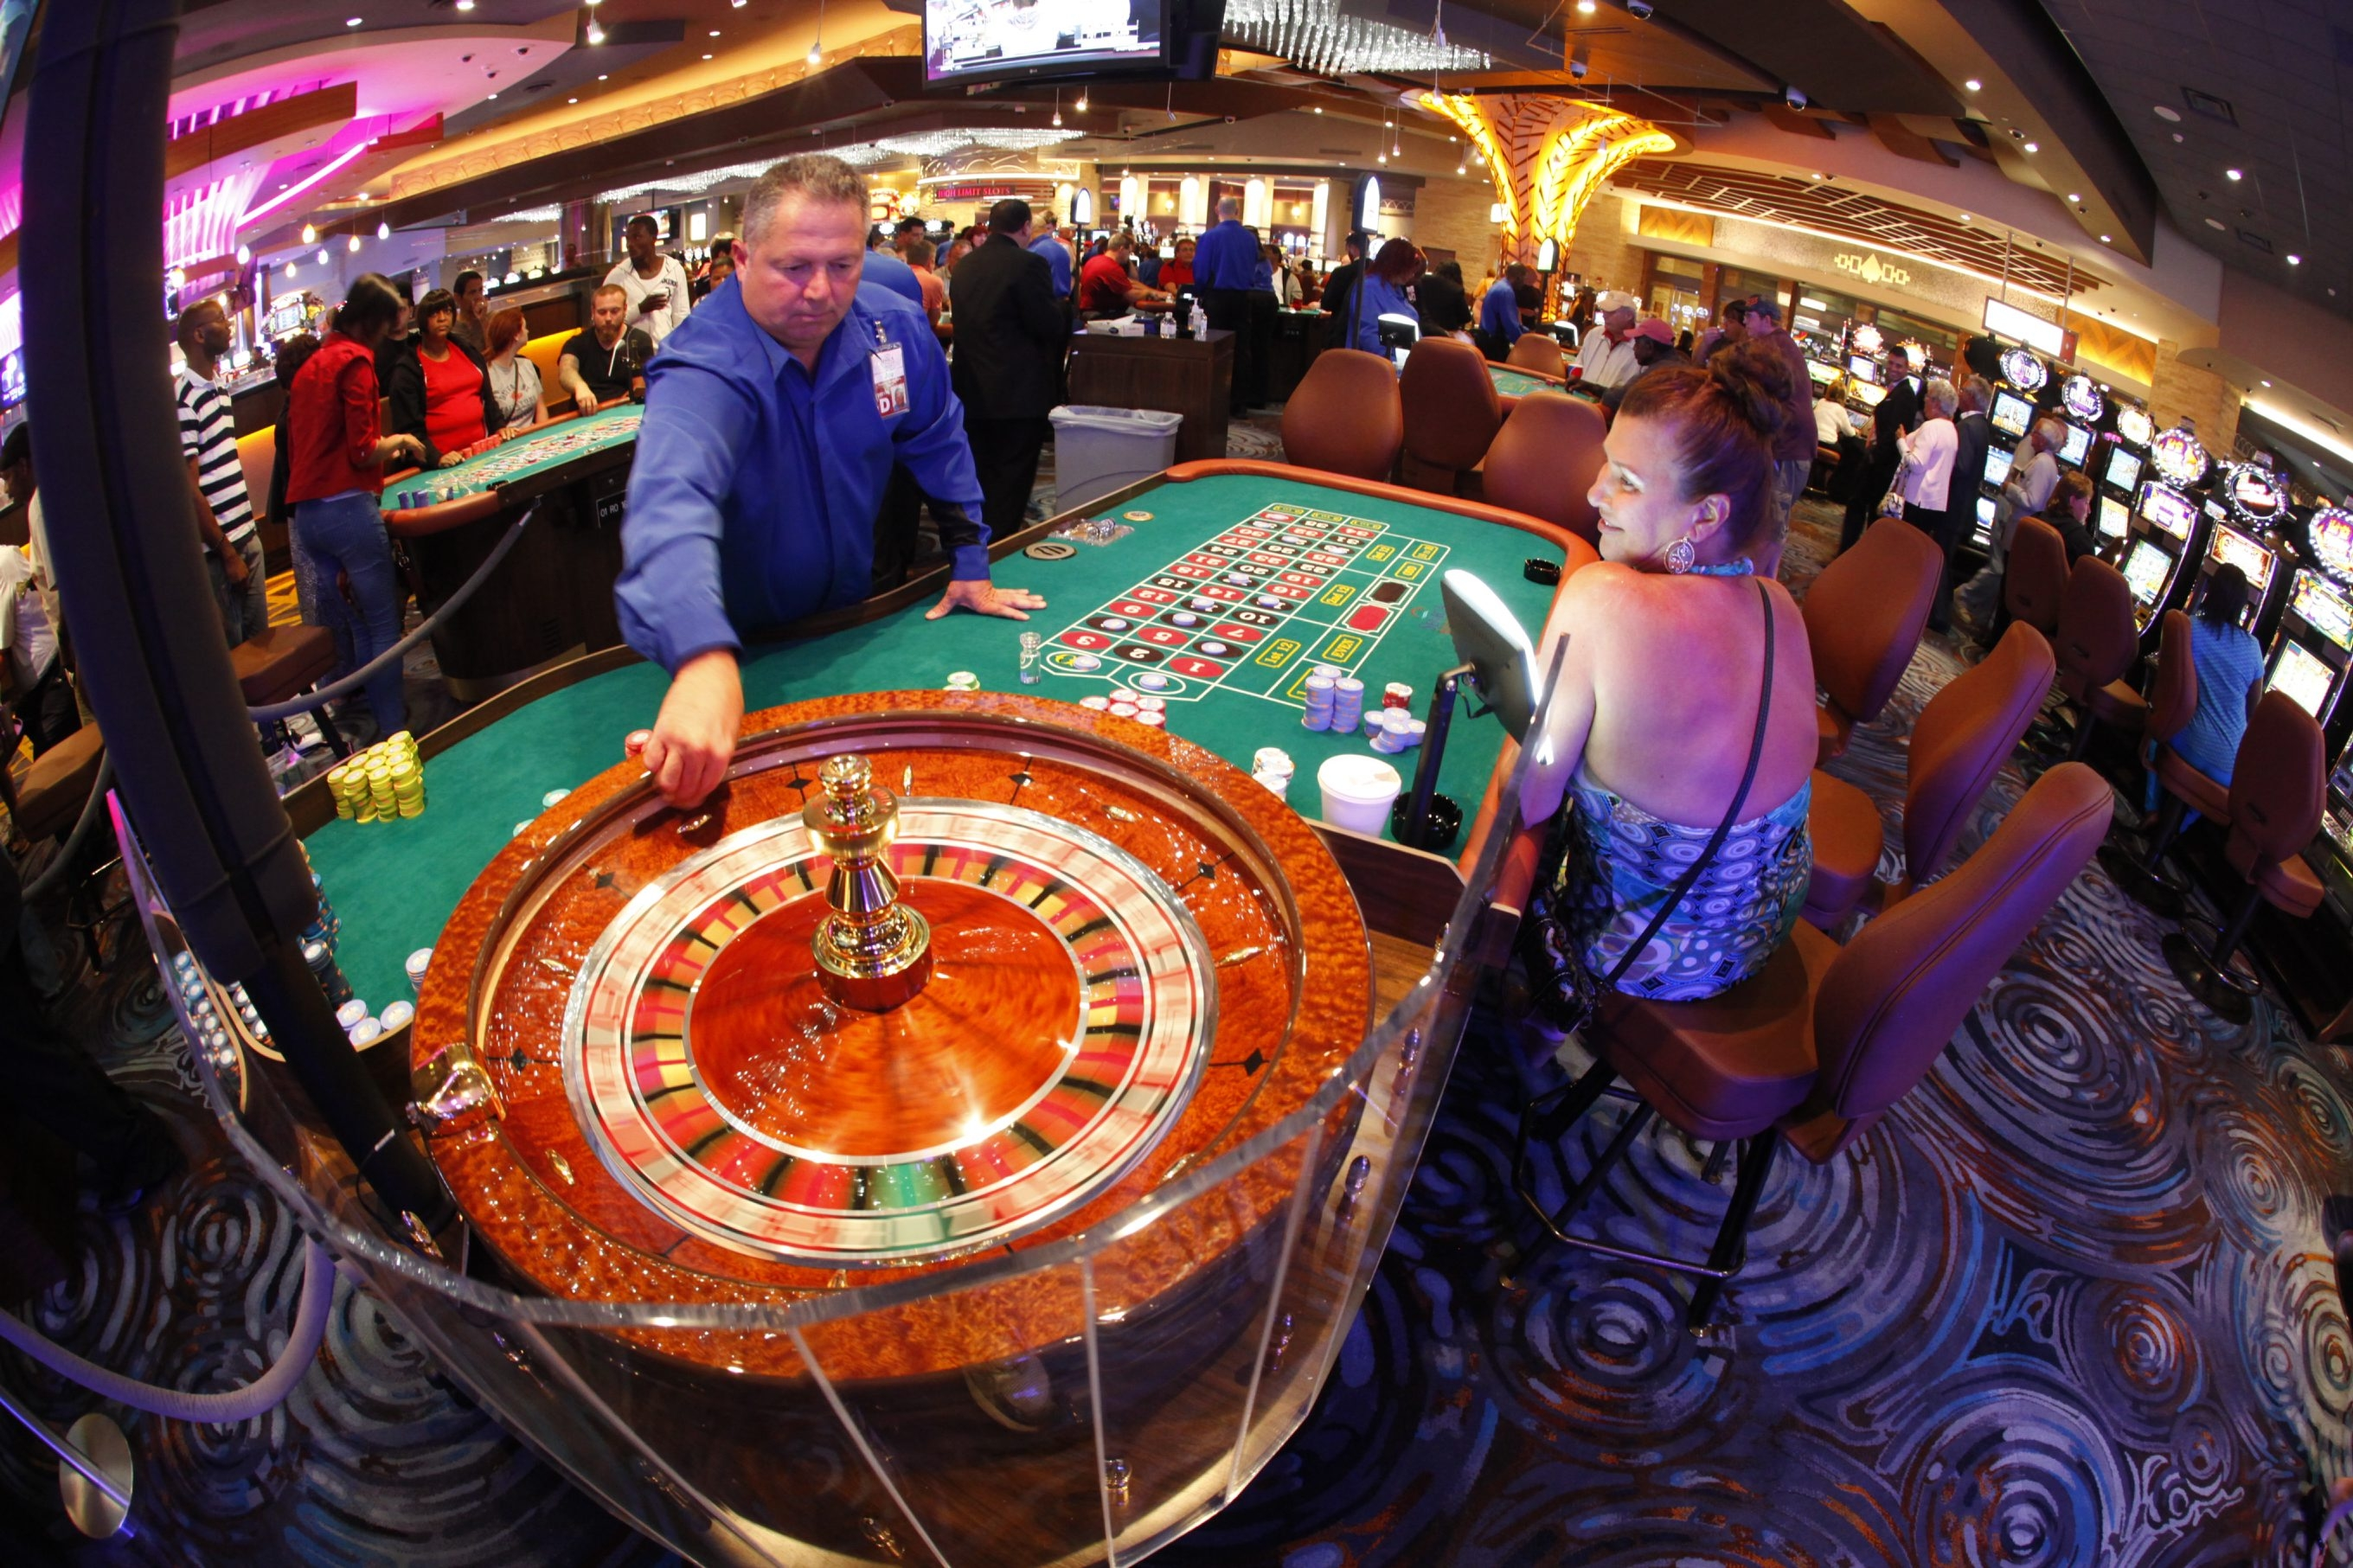 Gambling at casinos surged 10.7 percent in the year ended in January, the biggest gain since December 2006.